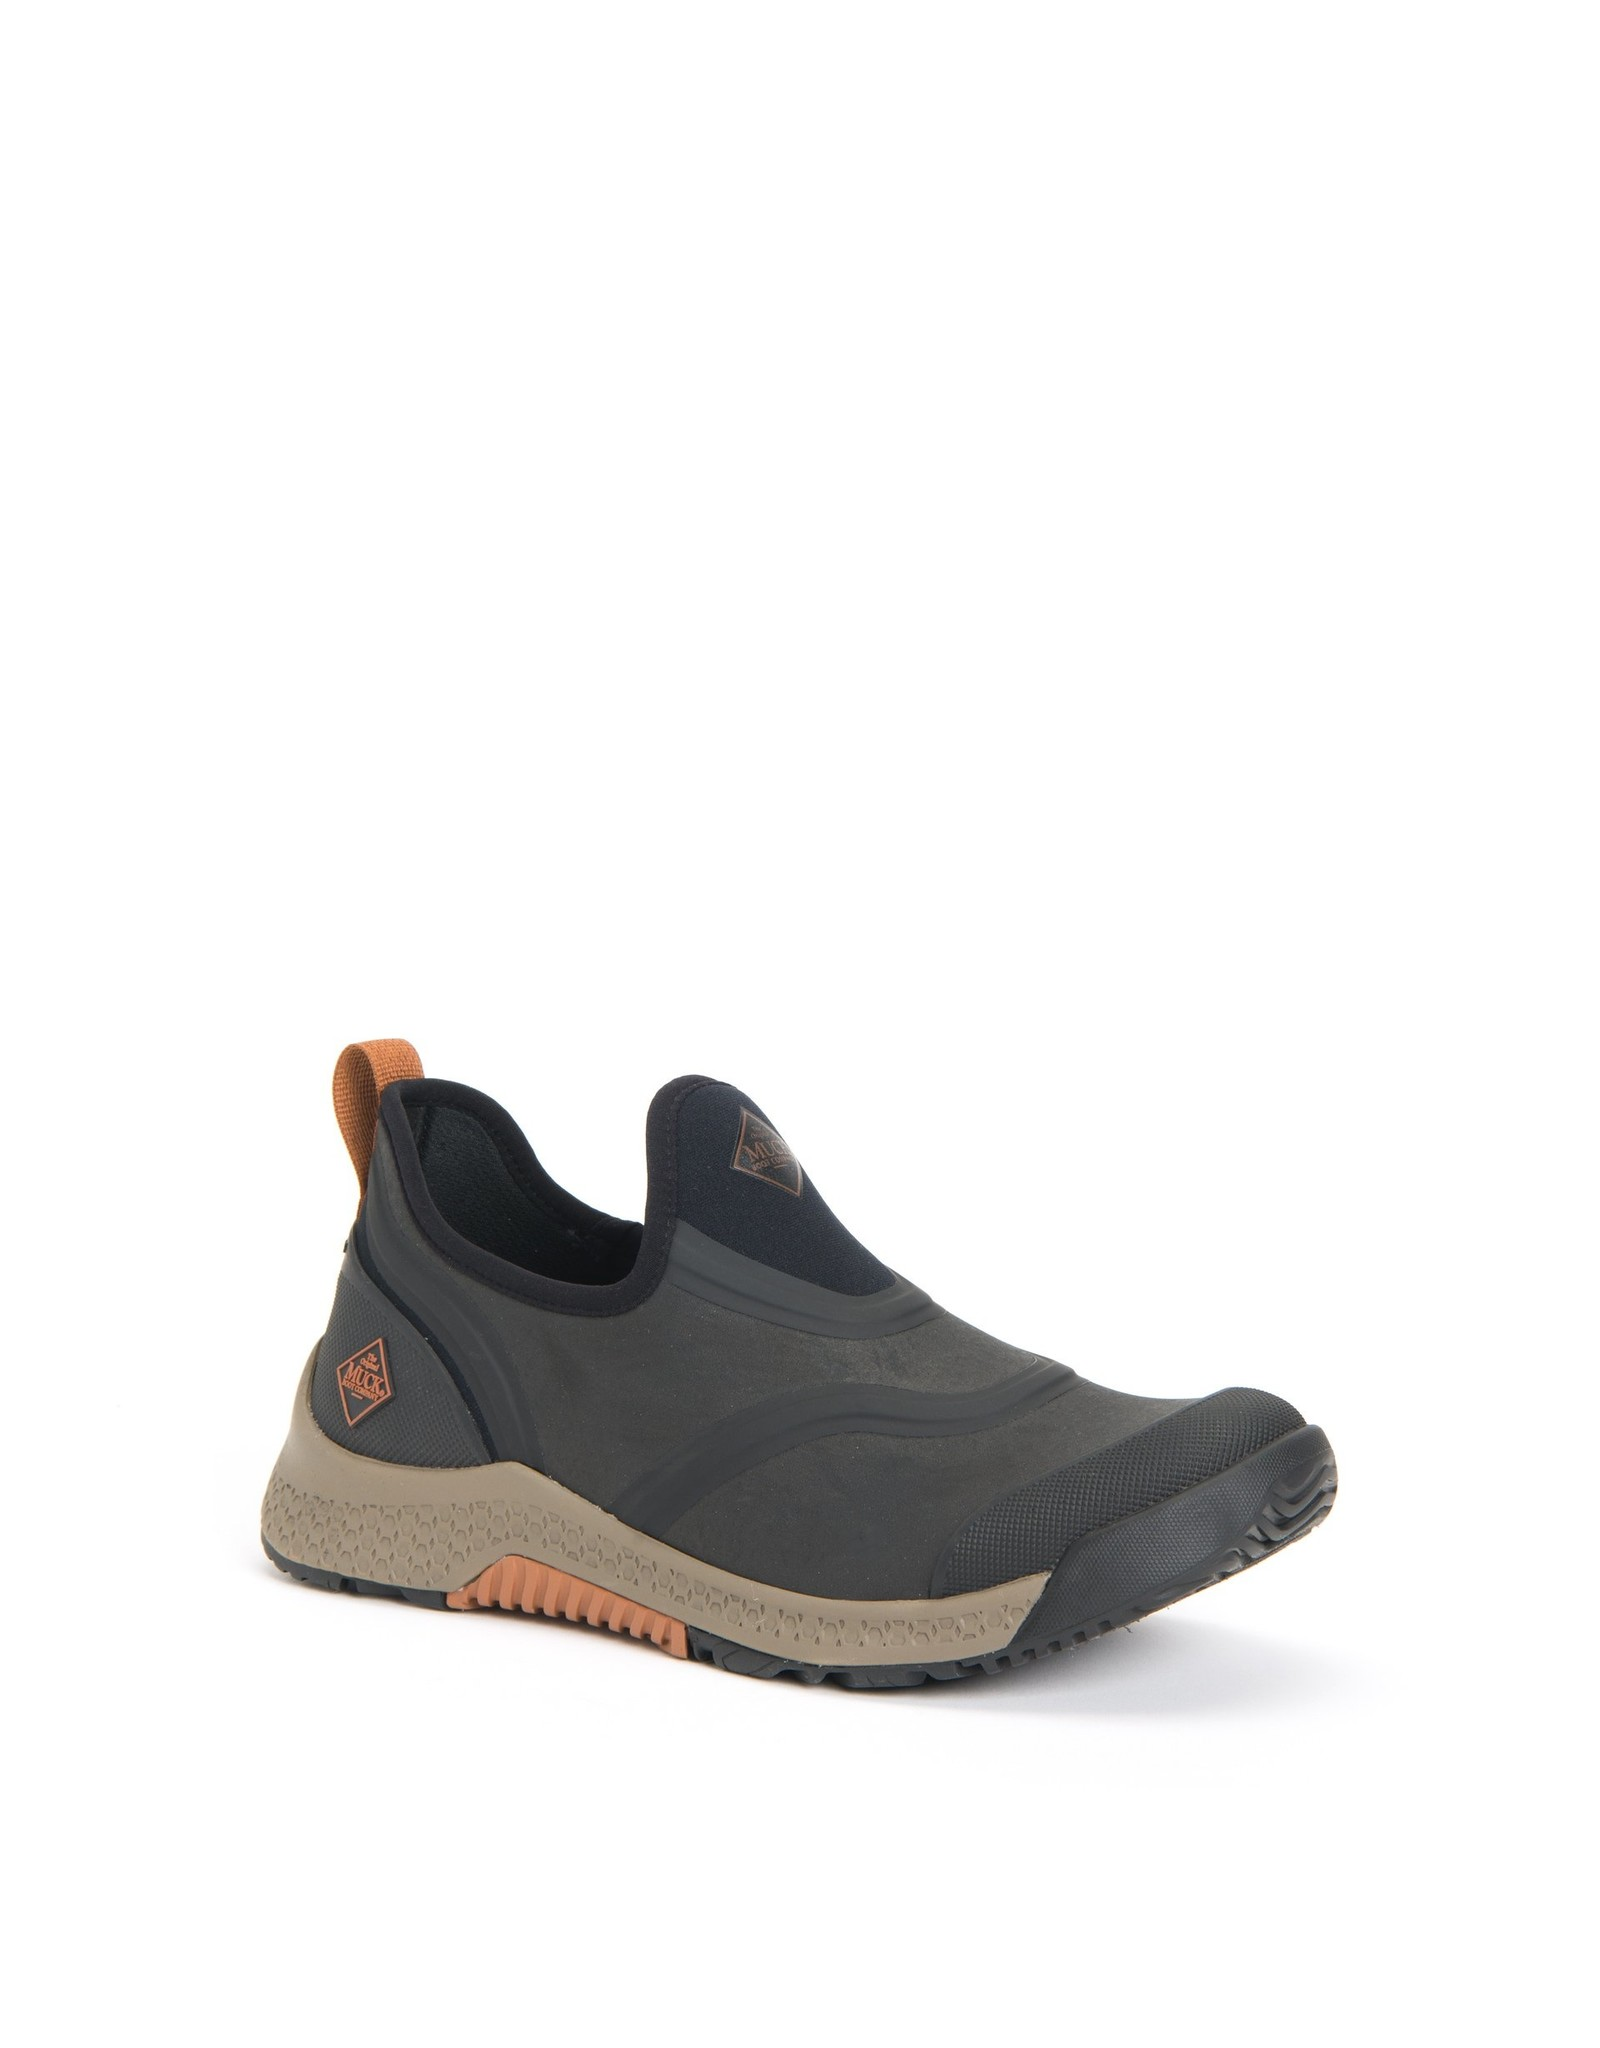 MUCK BOOT COMPANY MEN'S OUTSCAPE LOW